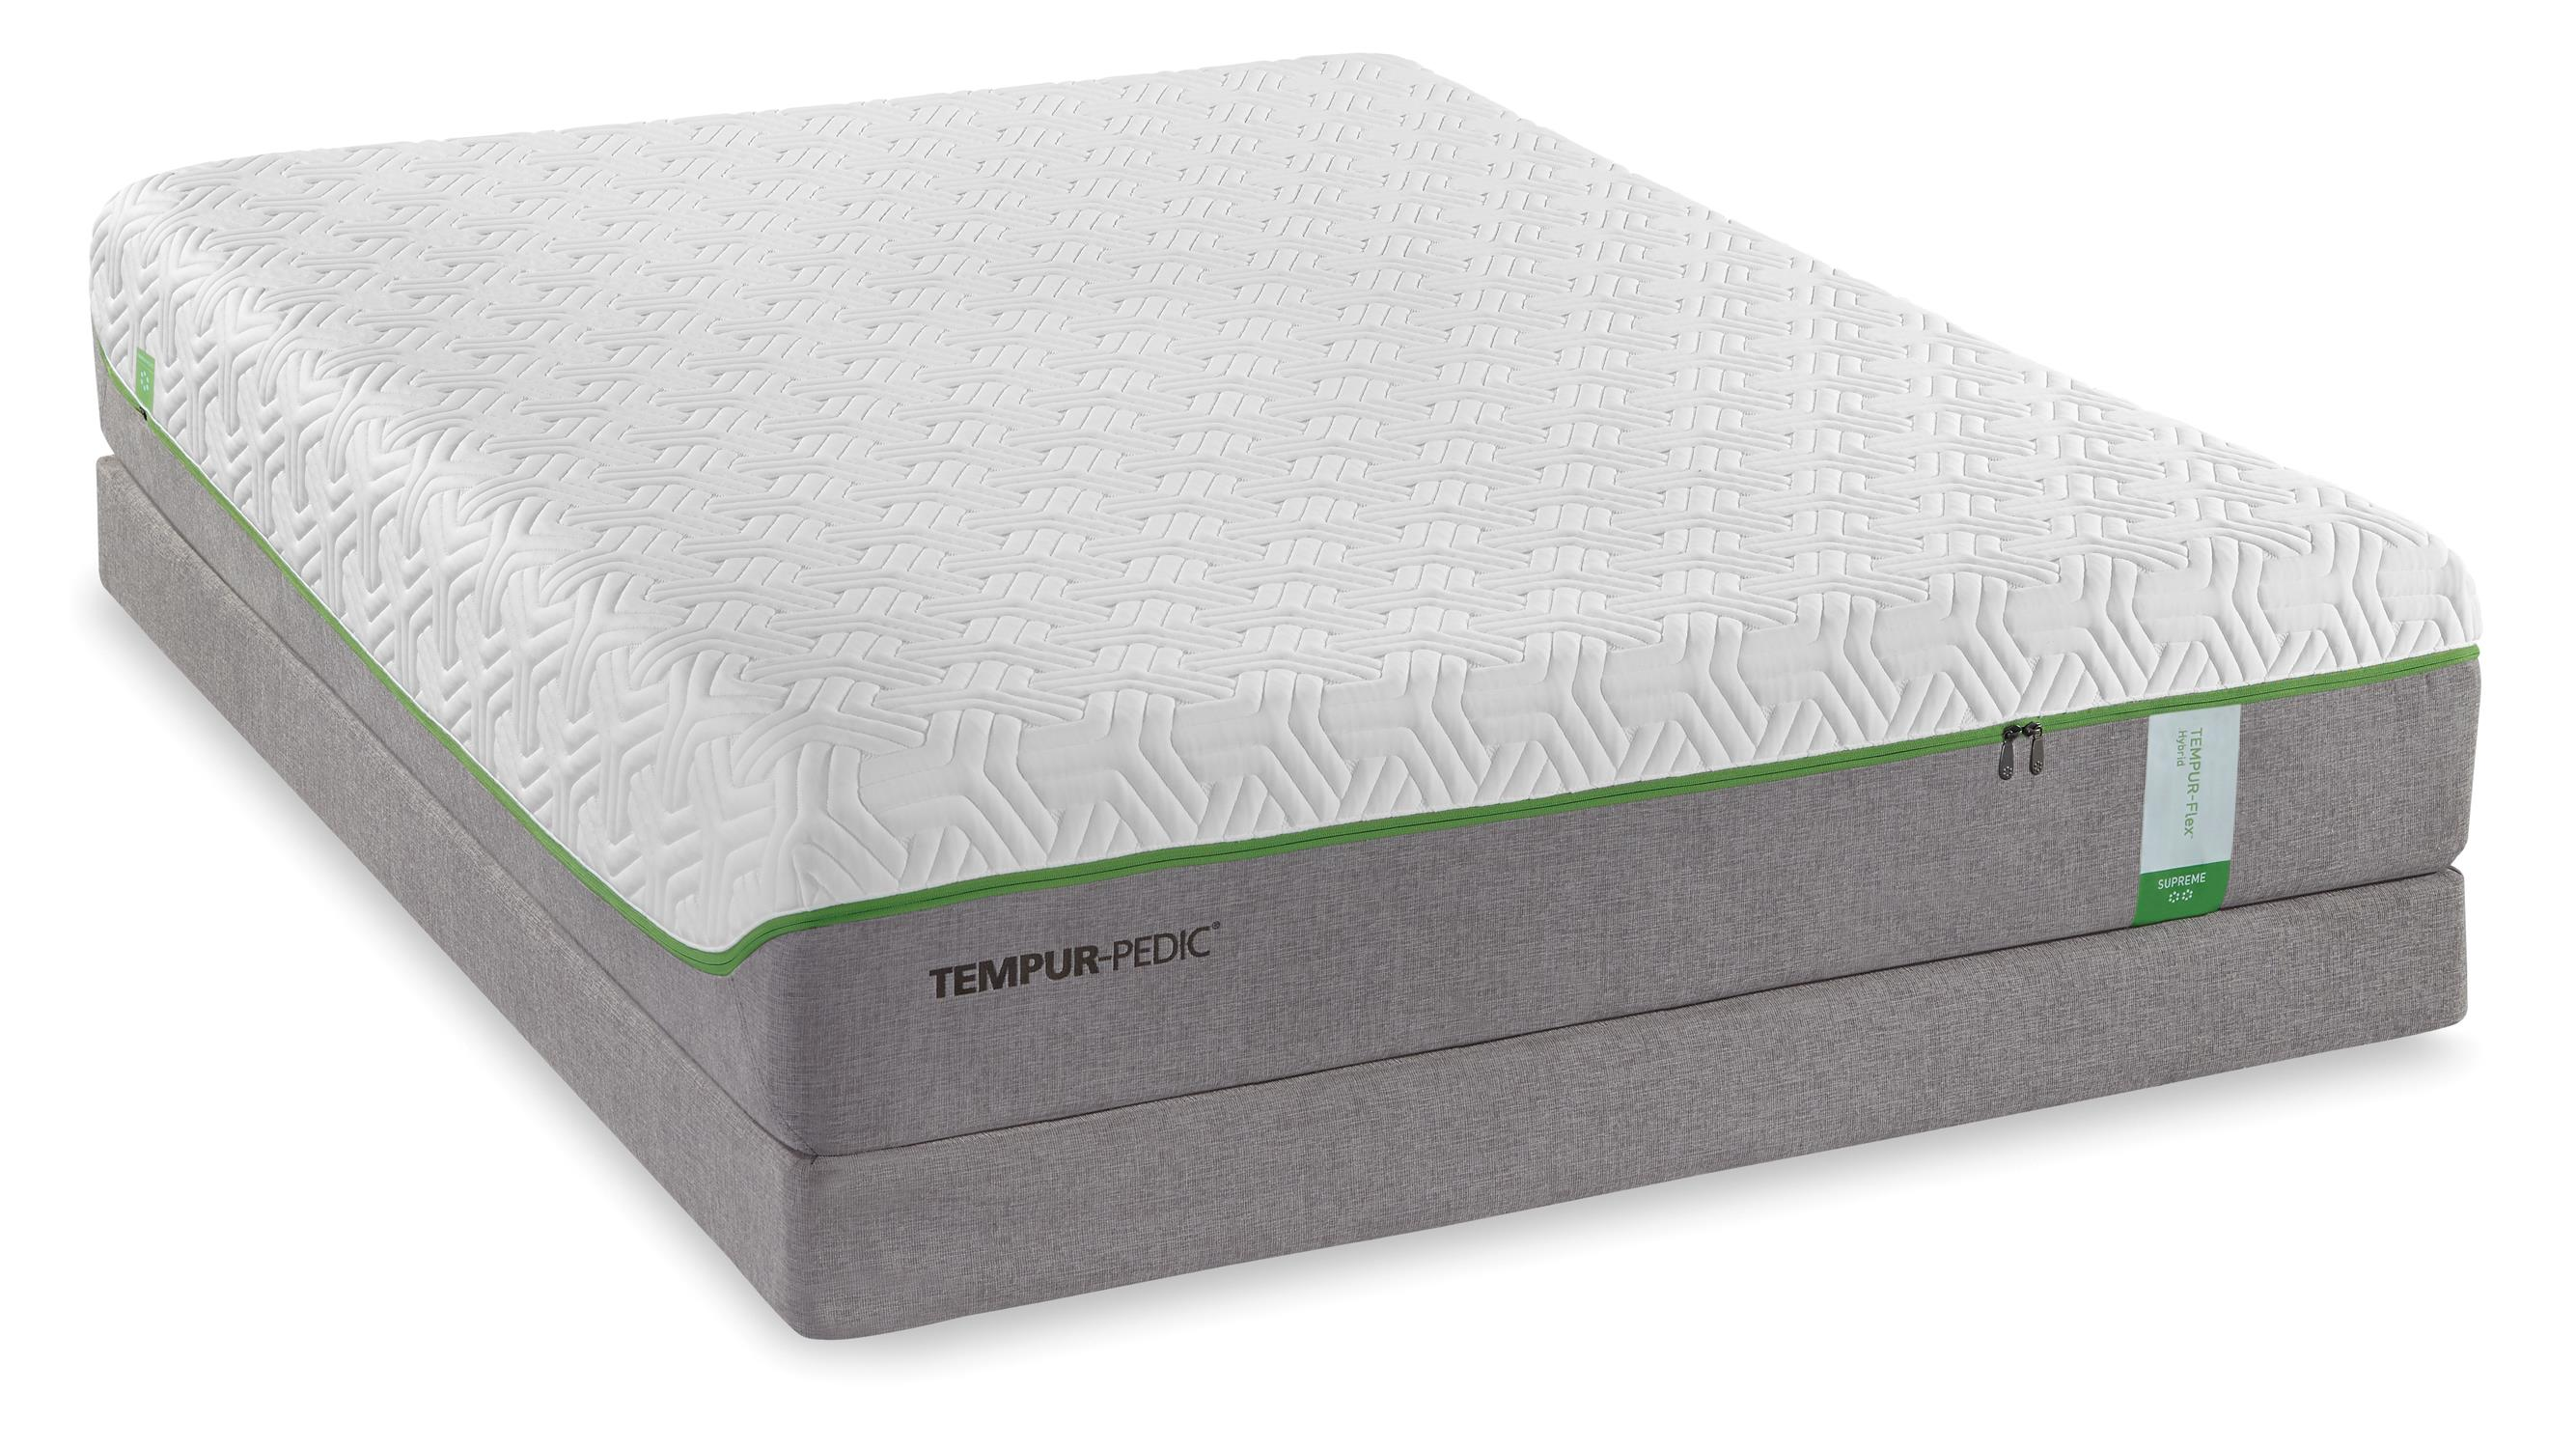 Tempur-Pedic® TEMPUR-Flex Supreme Twin Medium Plush Mattress Set - Item Number: 10116110+20510110